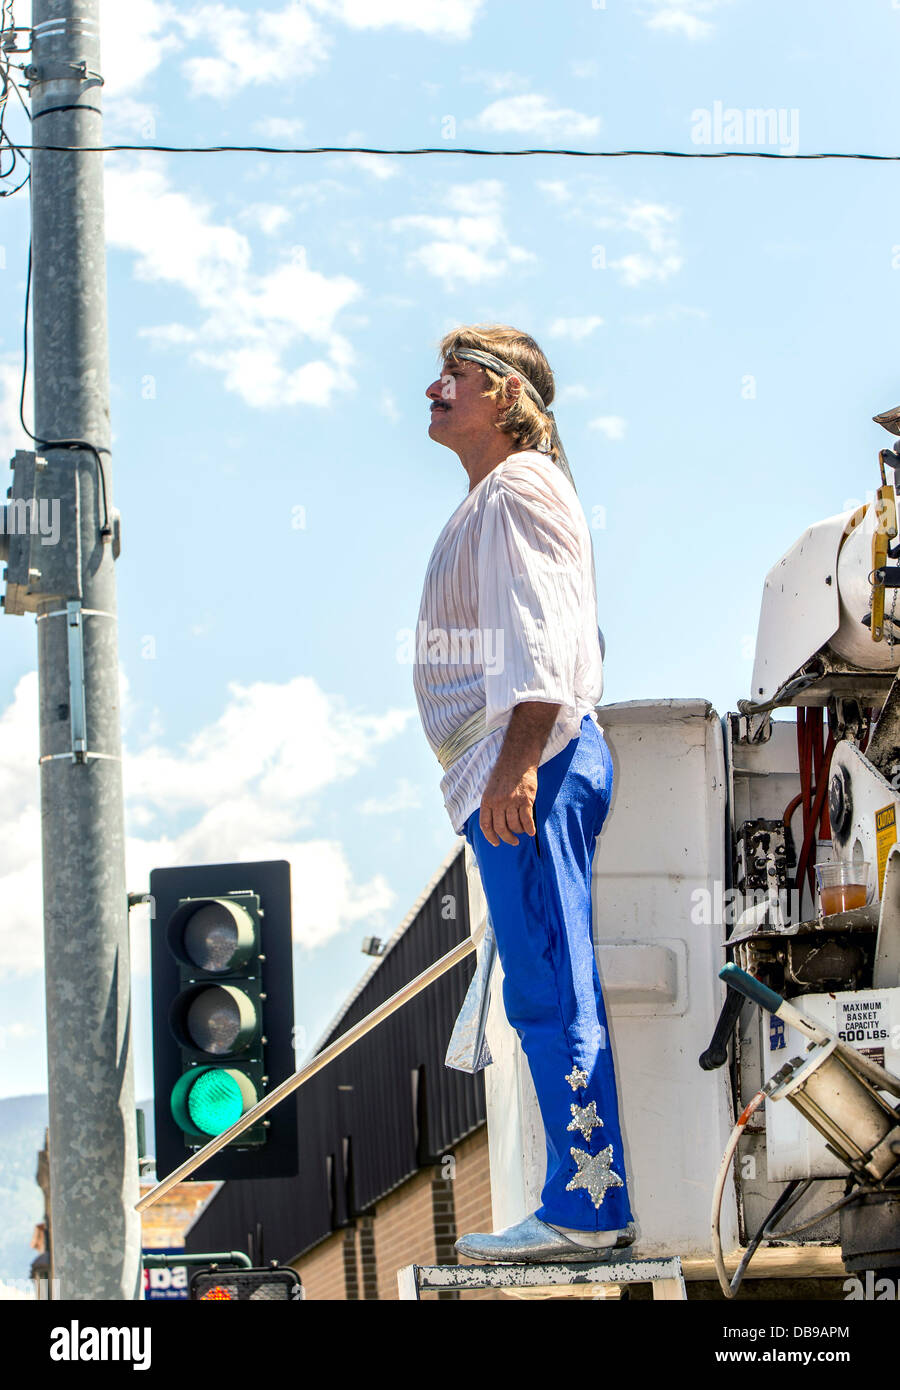 Butte, Montana, USA. 25th July, 2013. RICK WALLENDA prepares for his 700-foot, high wire walk up Main Street during - Stock Image